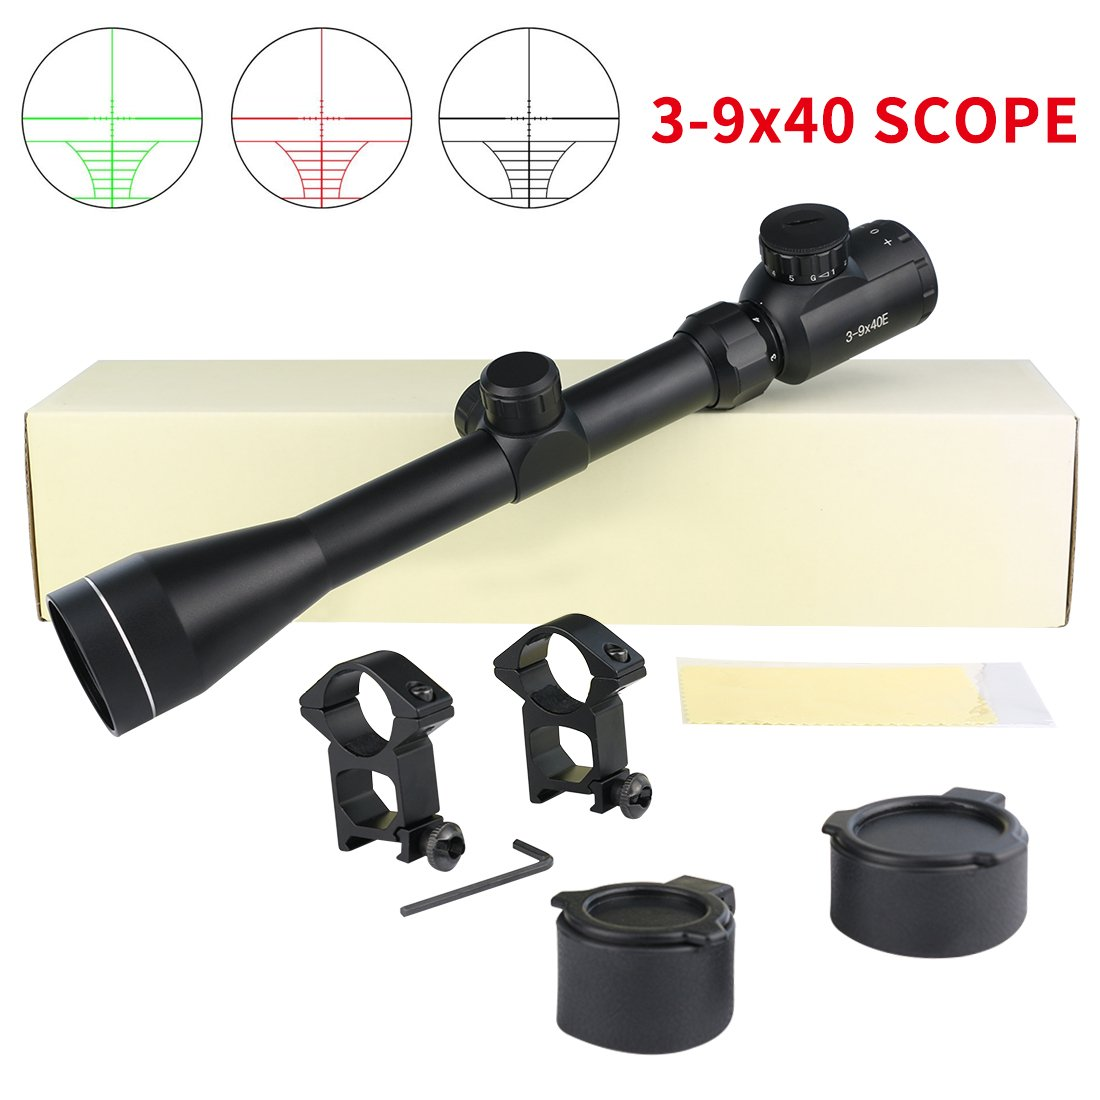 Twod 3-9x40mm Riflescope Red/Green Illuminated Handgun Scope with 1'' Tube + Scope Rings + Lens Cover by Twod